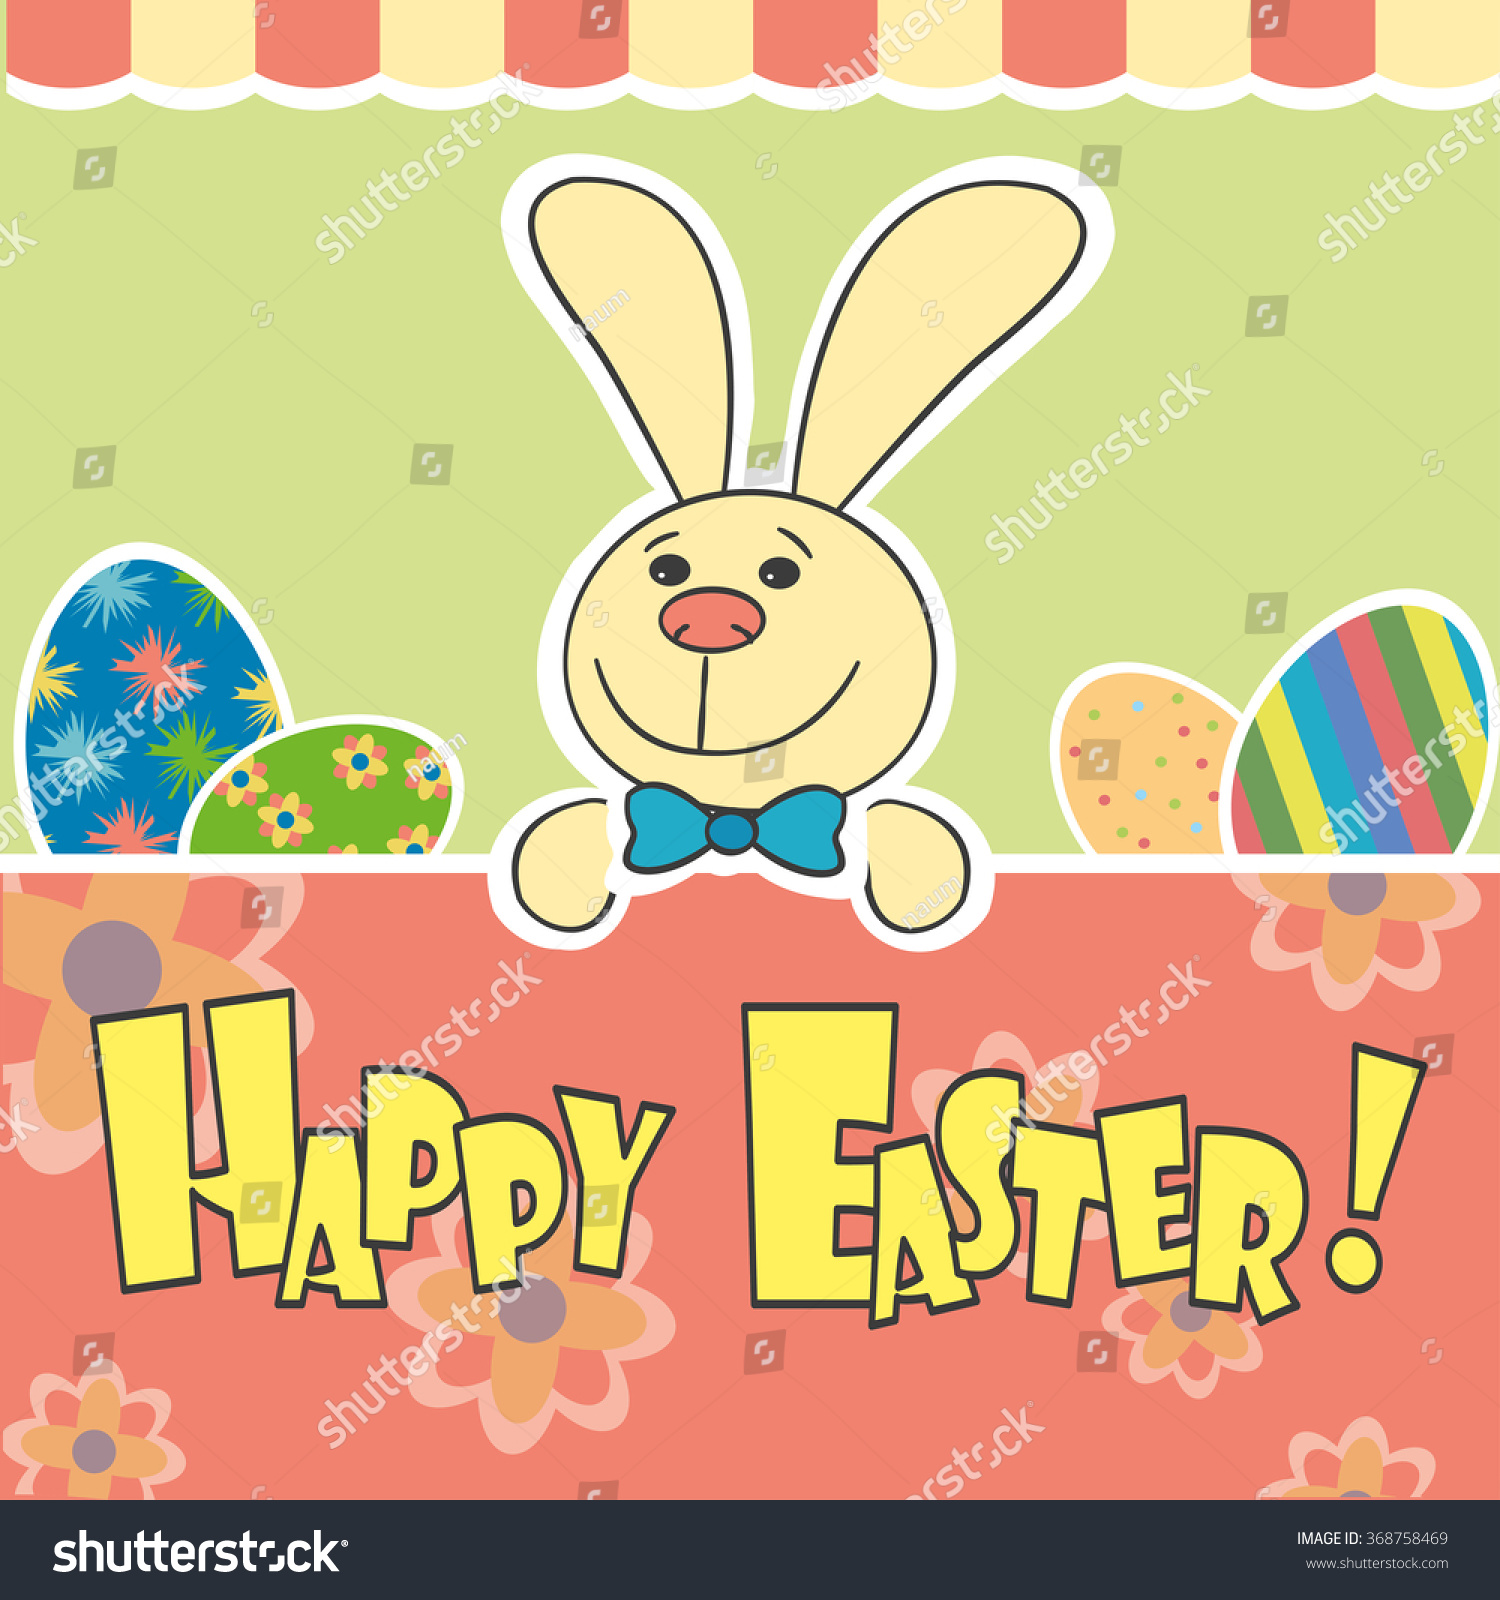 Happy Easter Greeting Card Vector Illustration Stock Vector Royalty